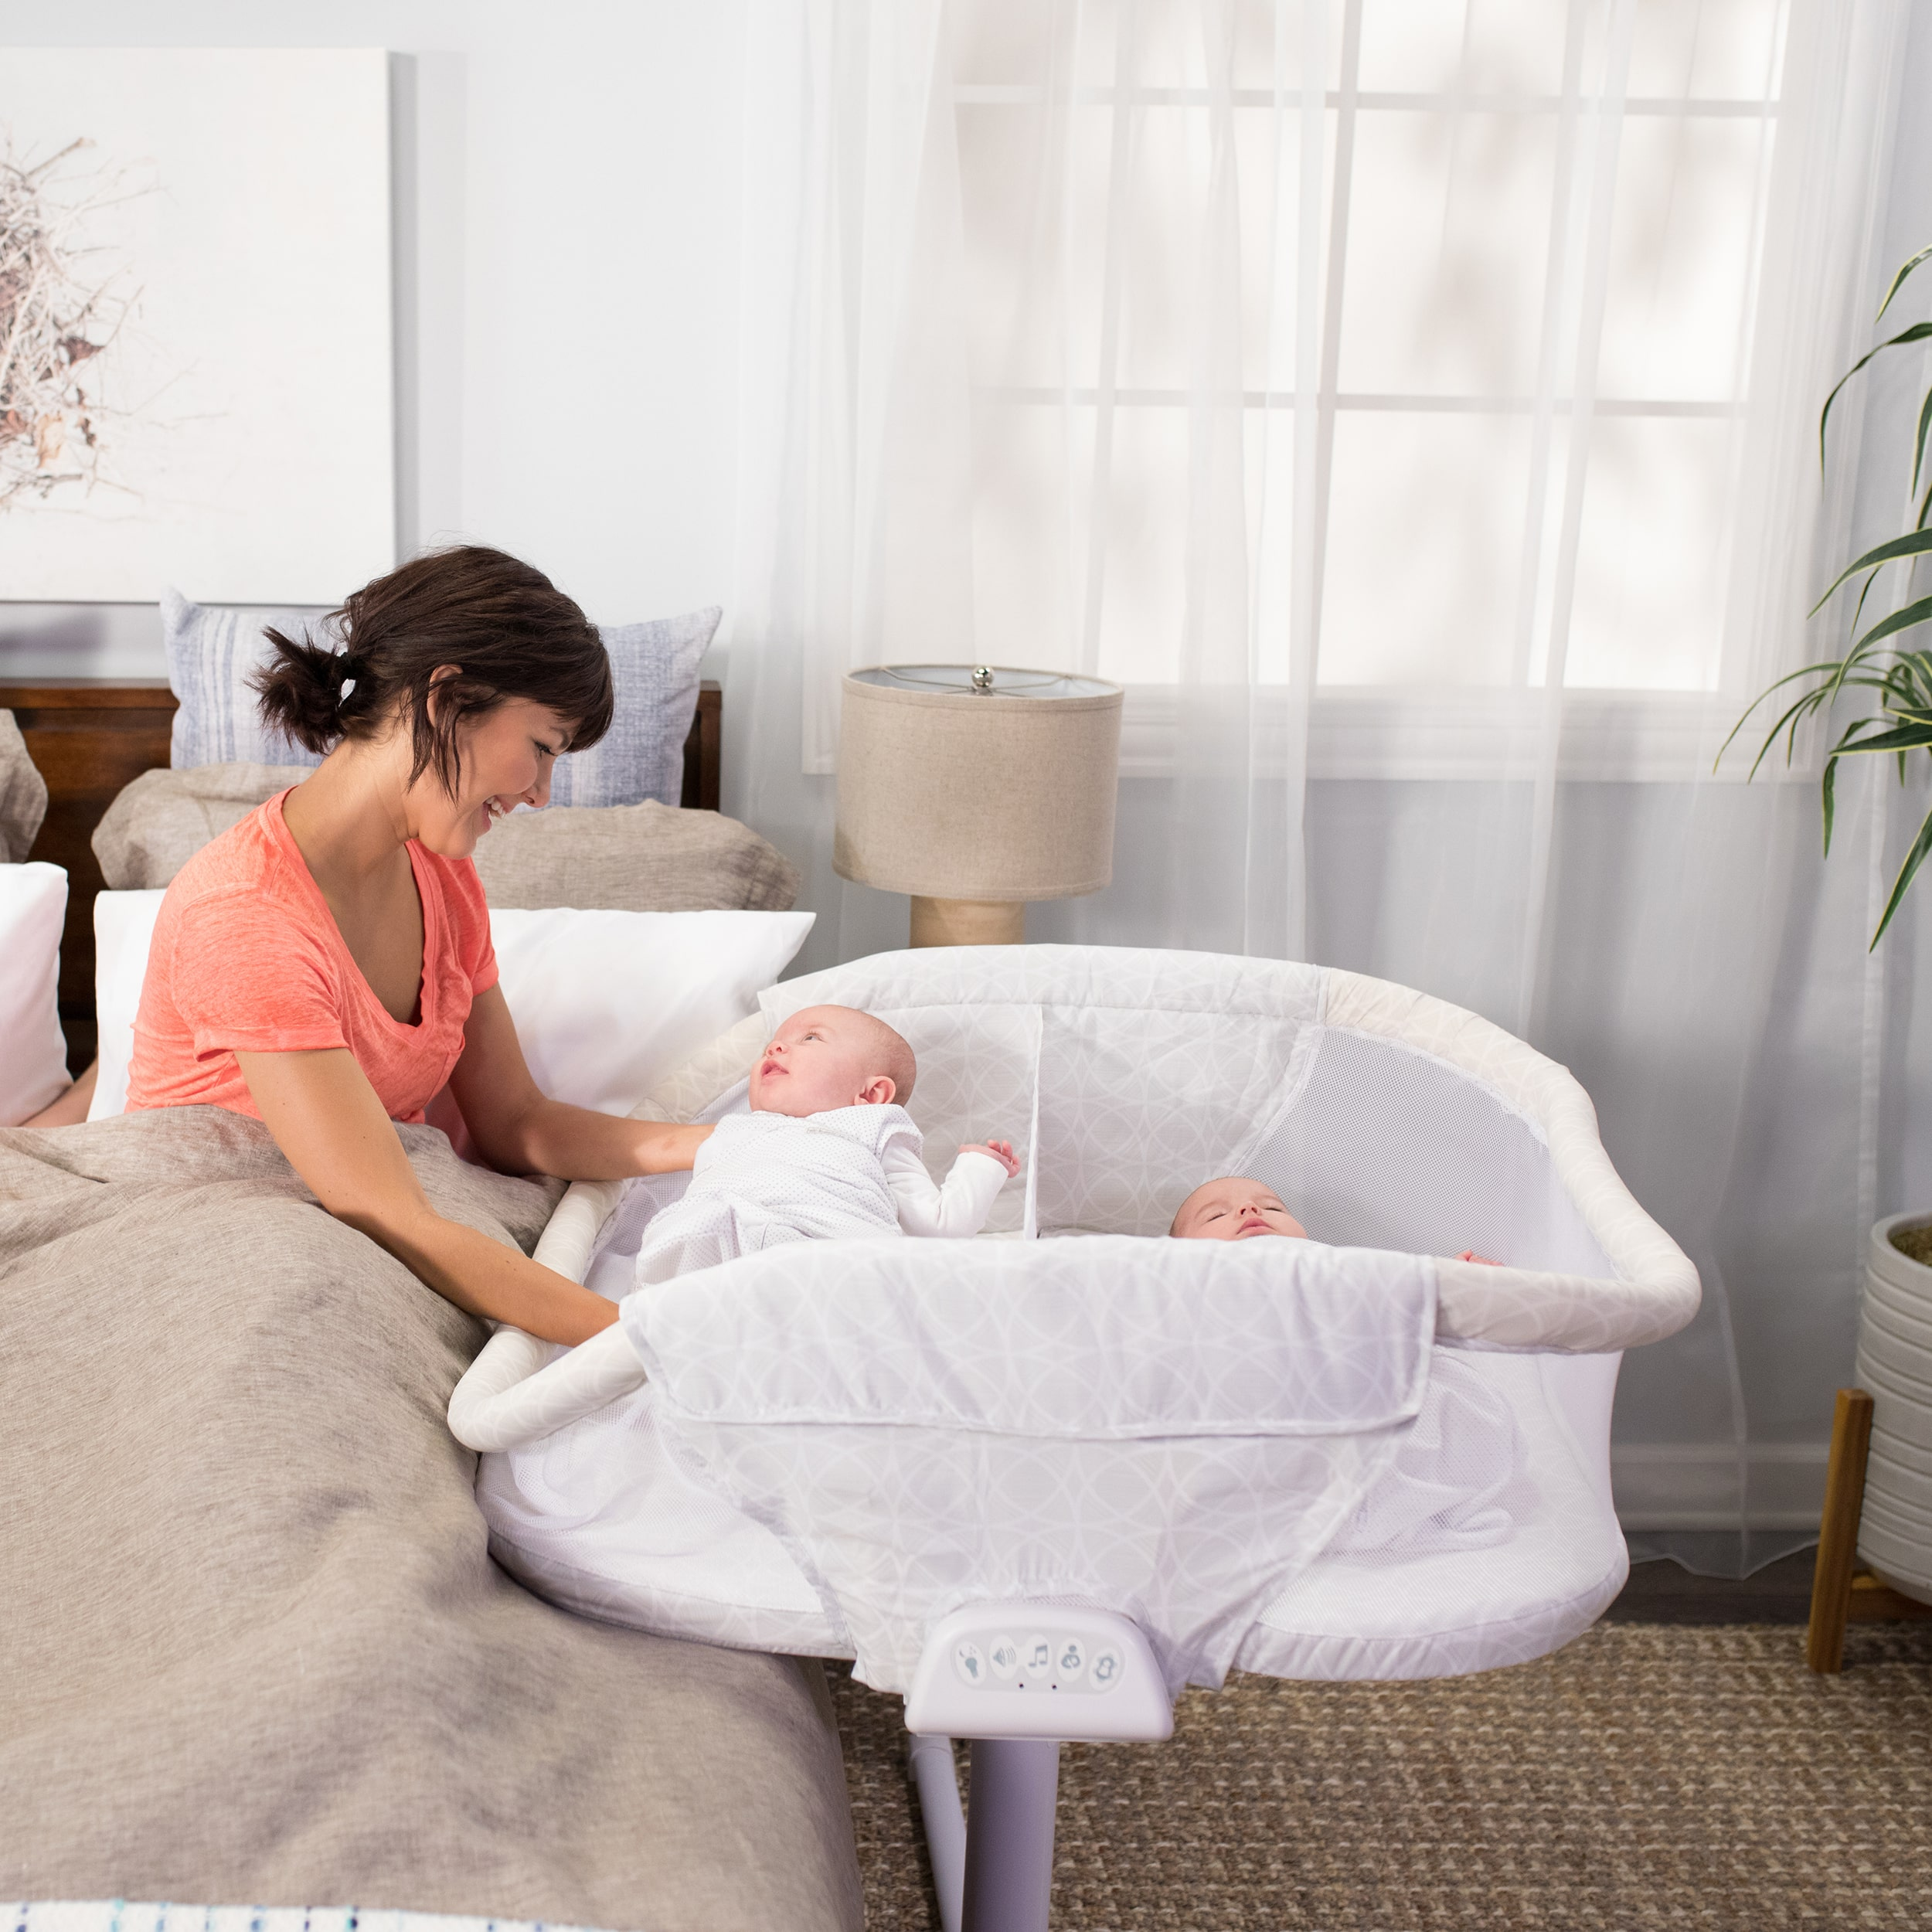 parent using patented lowering bedside wall to take one twin out of the halo bassinest twin sleeper